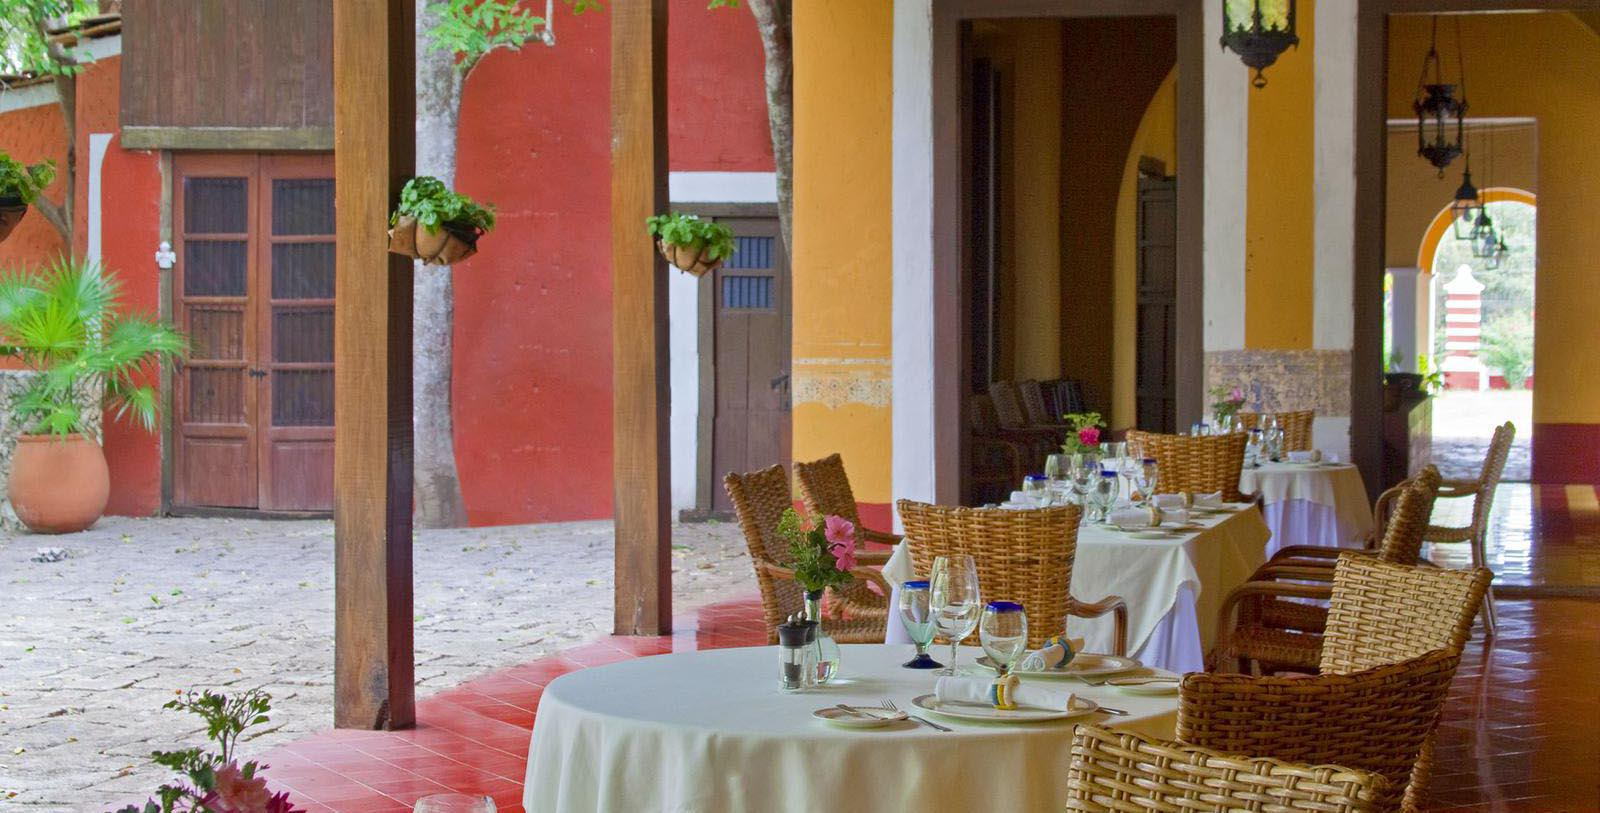 Image of Santa Rosa Restaurant, Hacienda Santa Rosa, A Luxury Collection Hotel, Santa Rosa, Mexico, 1897, Member of Historic Hotels Worldwide, Taste